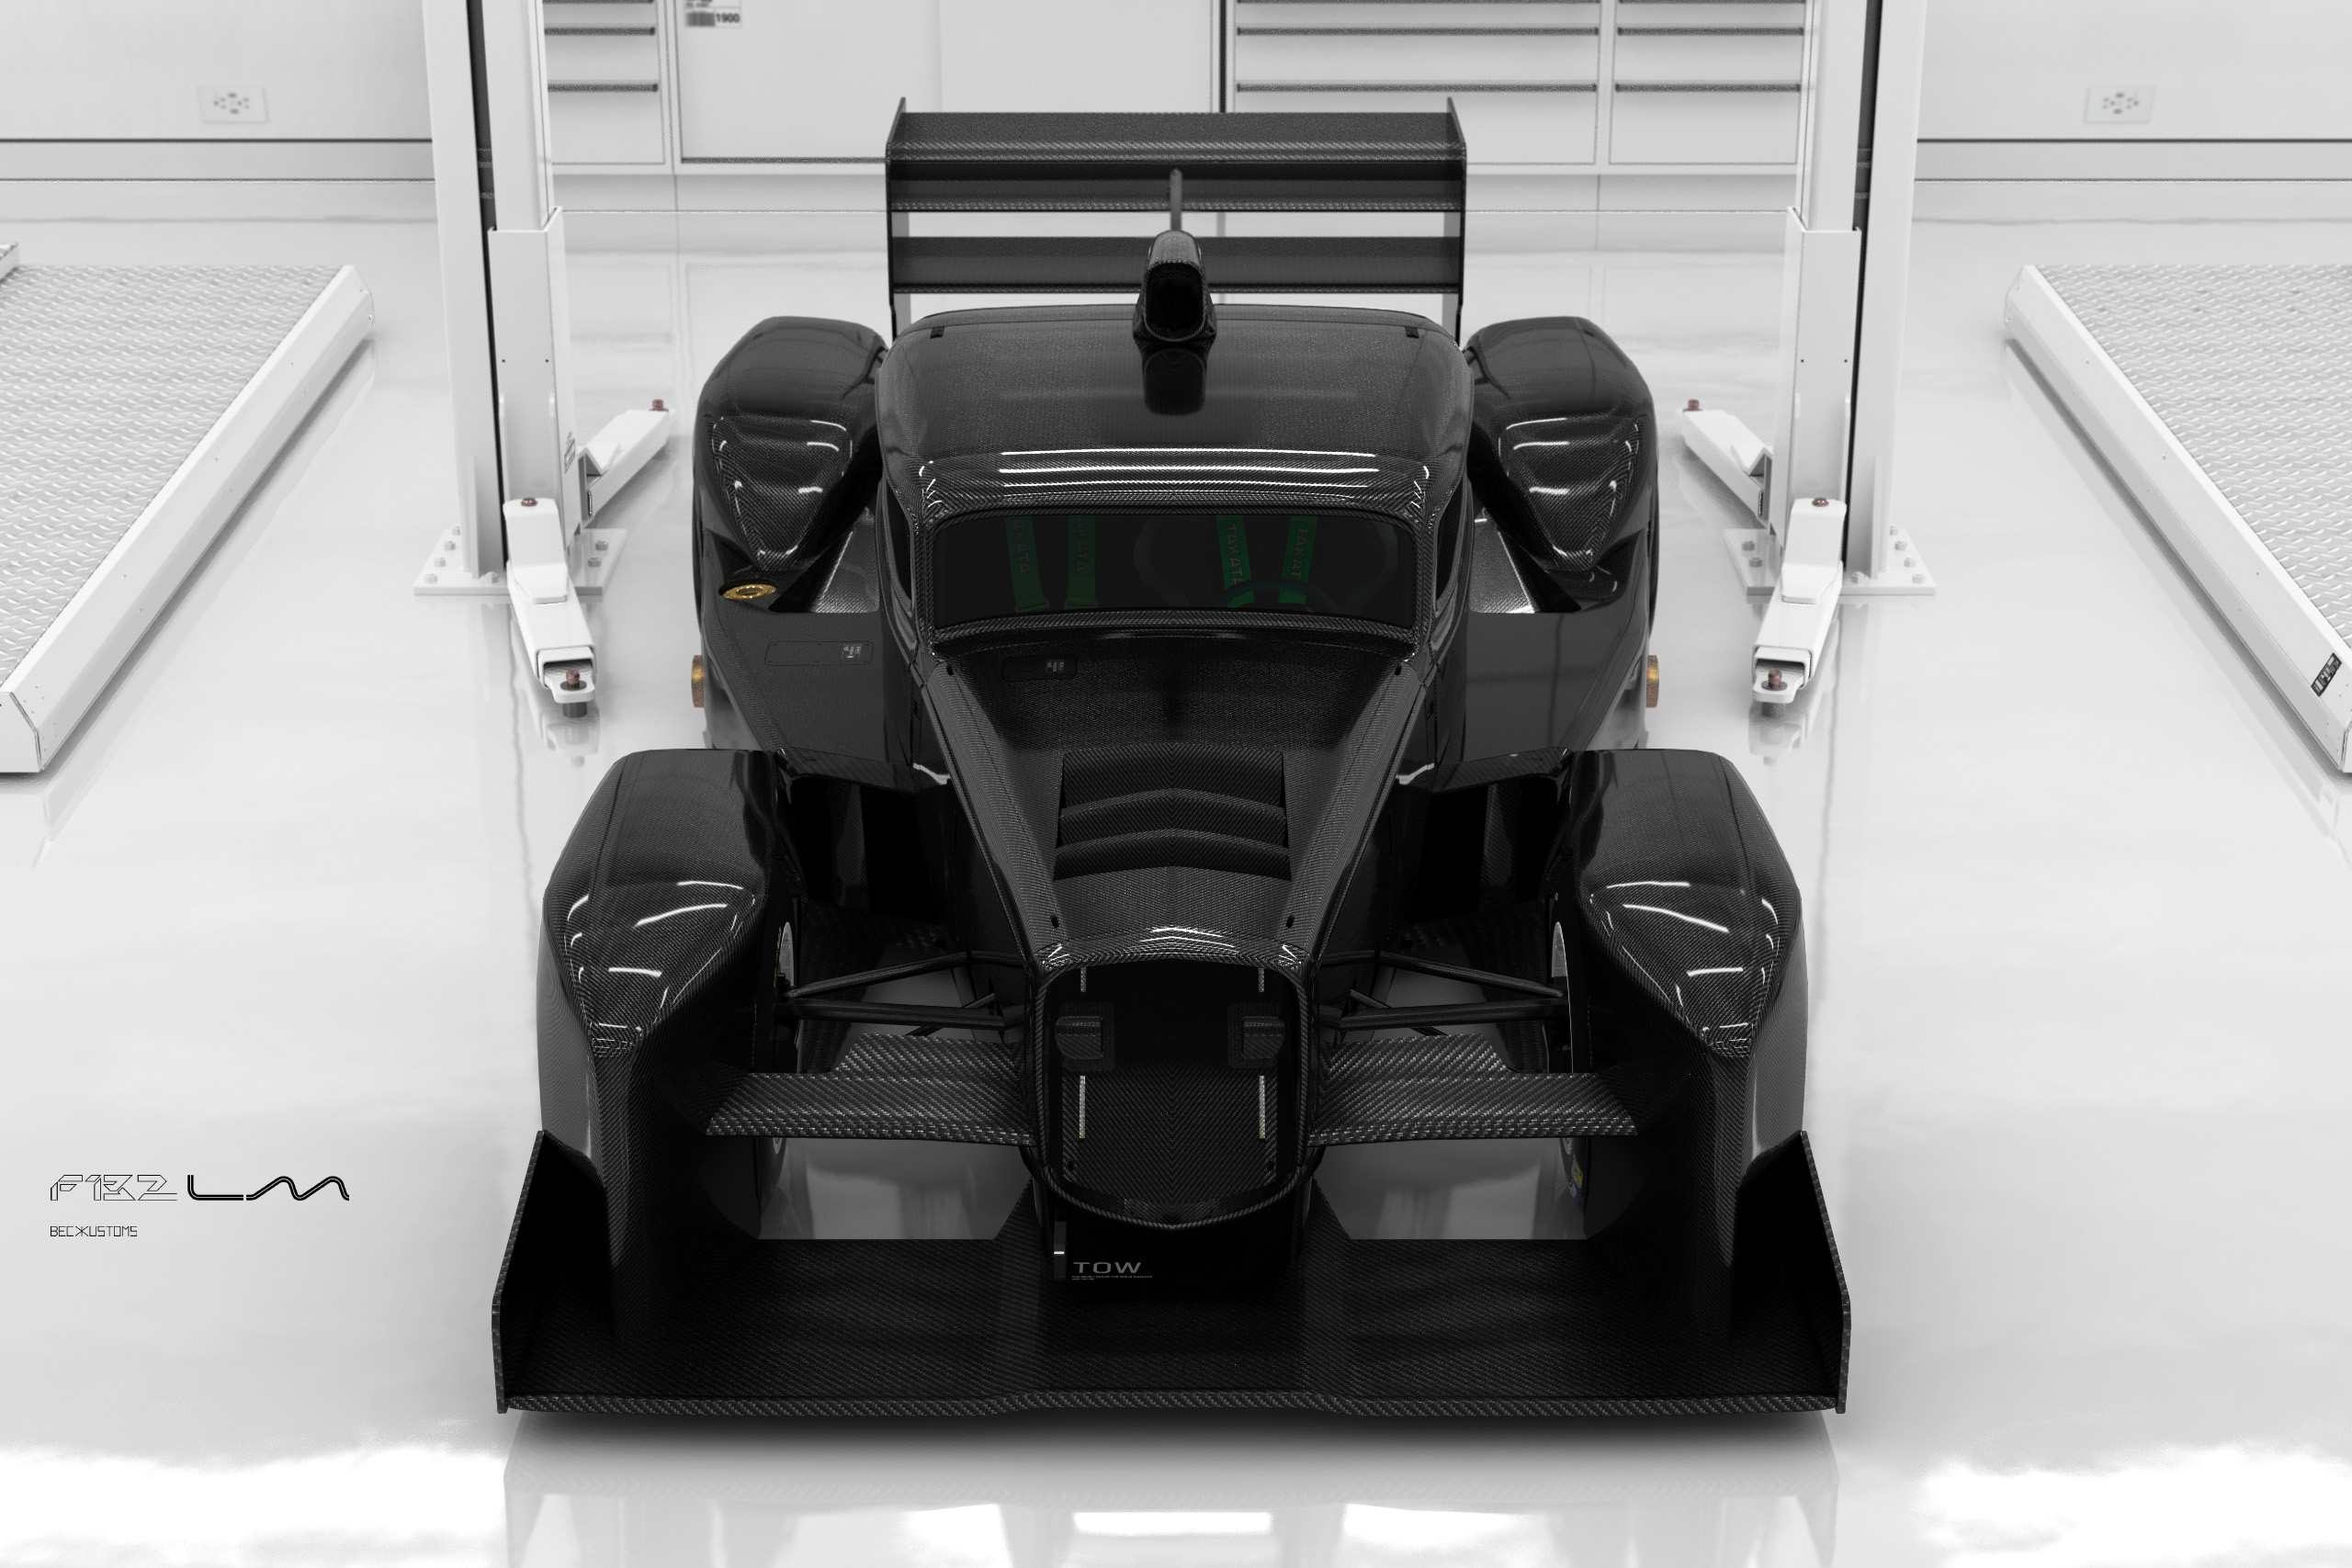 F132LM